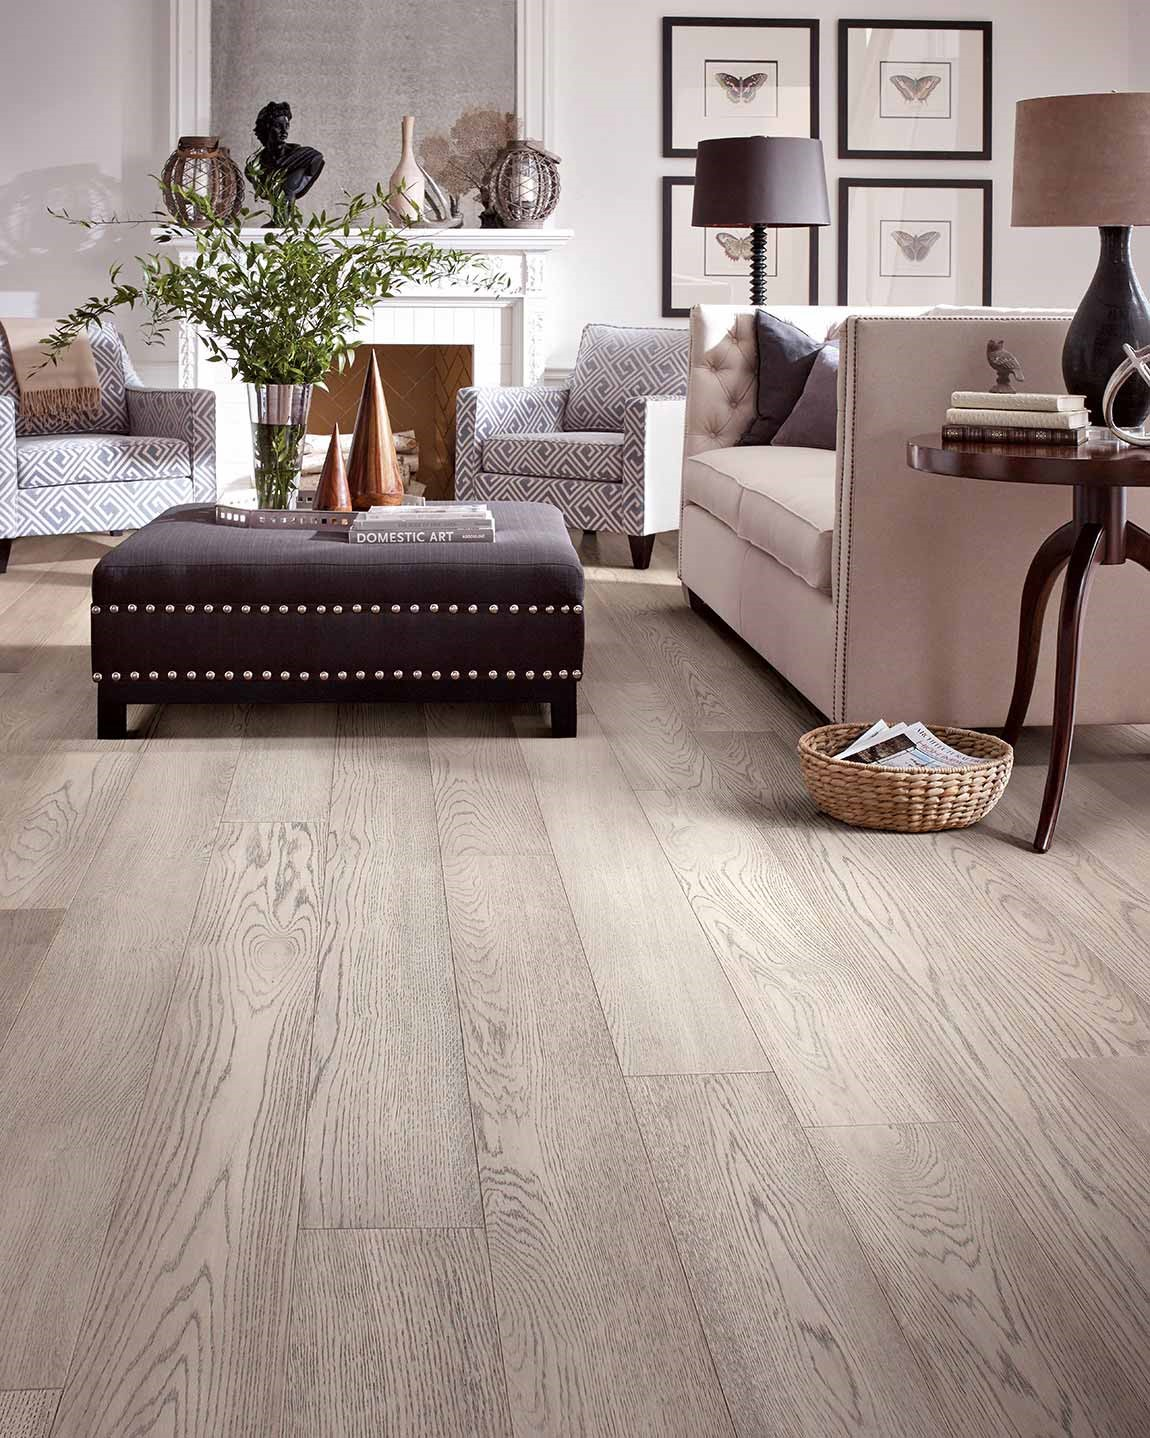 wire brushed light colored flooring in classically styled living room